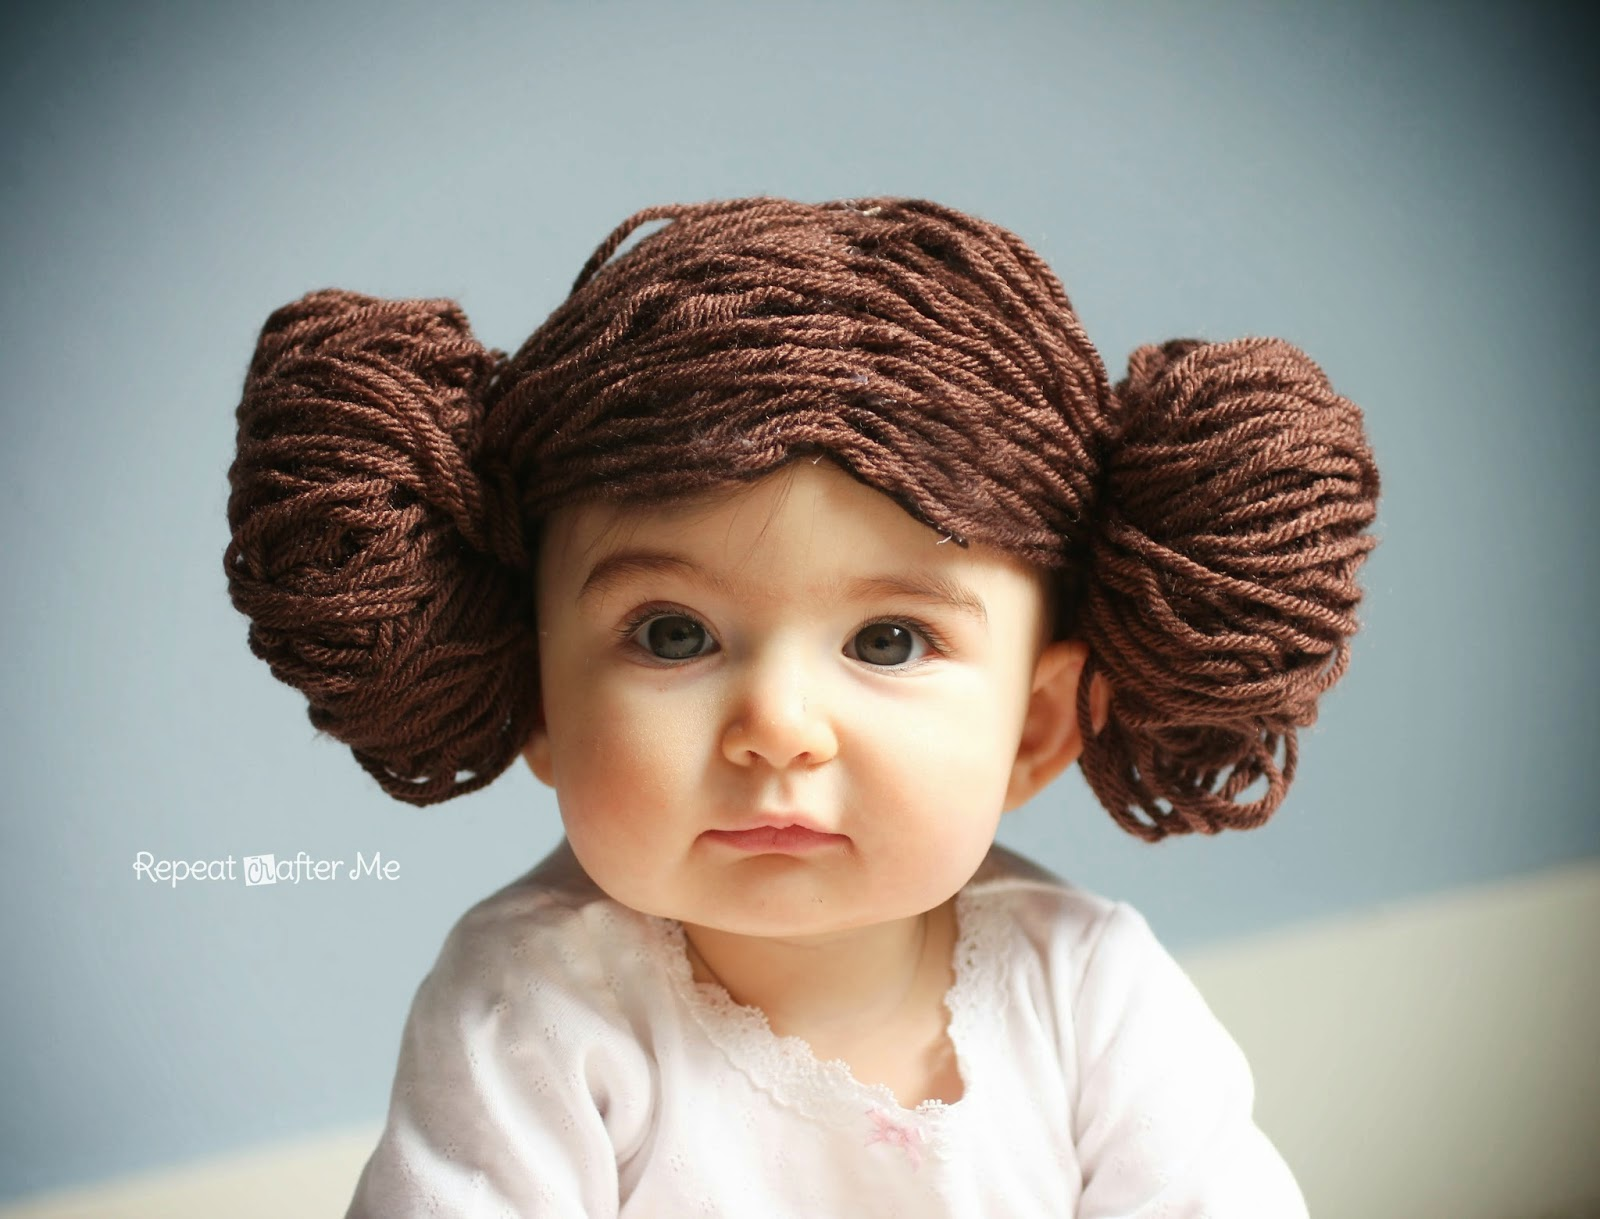 DIY Princess Leia Yarn Wig  sc 1 st  The Idea King & DIY Princess Leia Yarn Wig - The Idea King